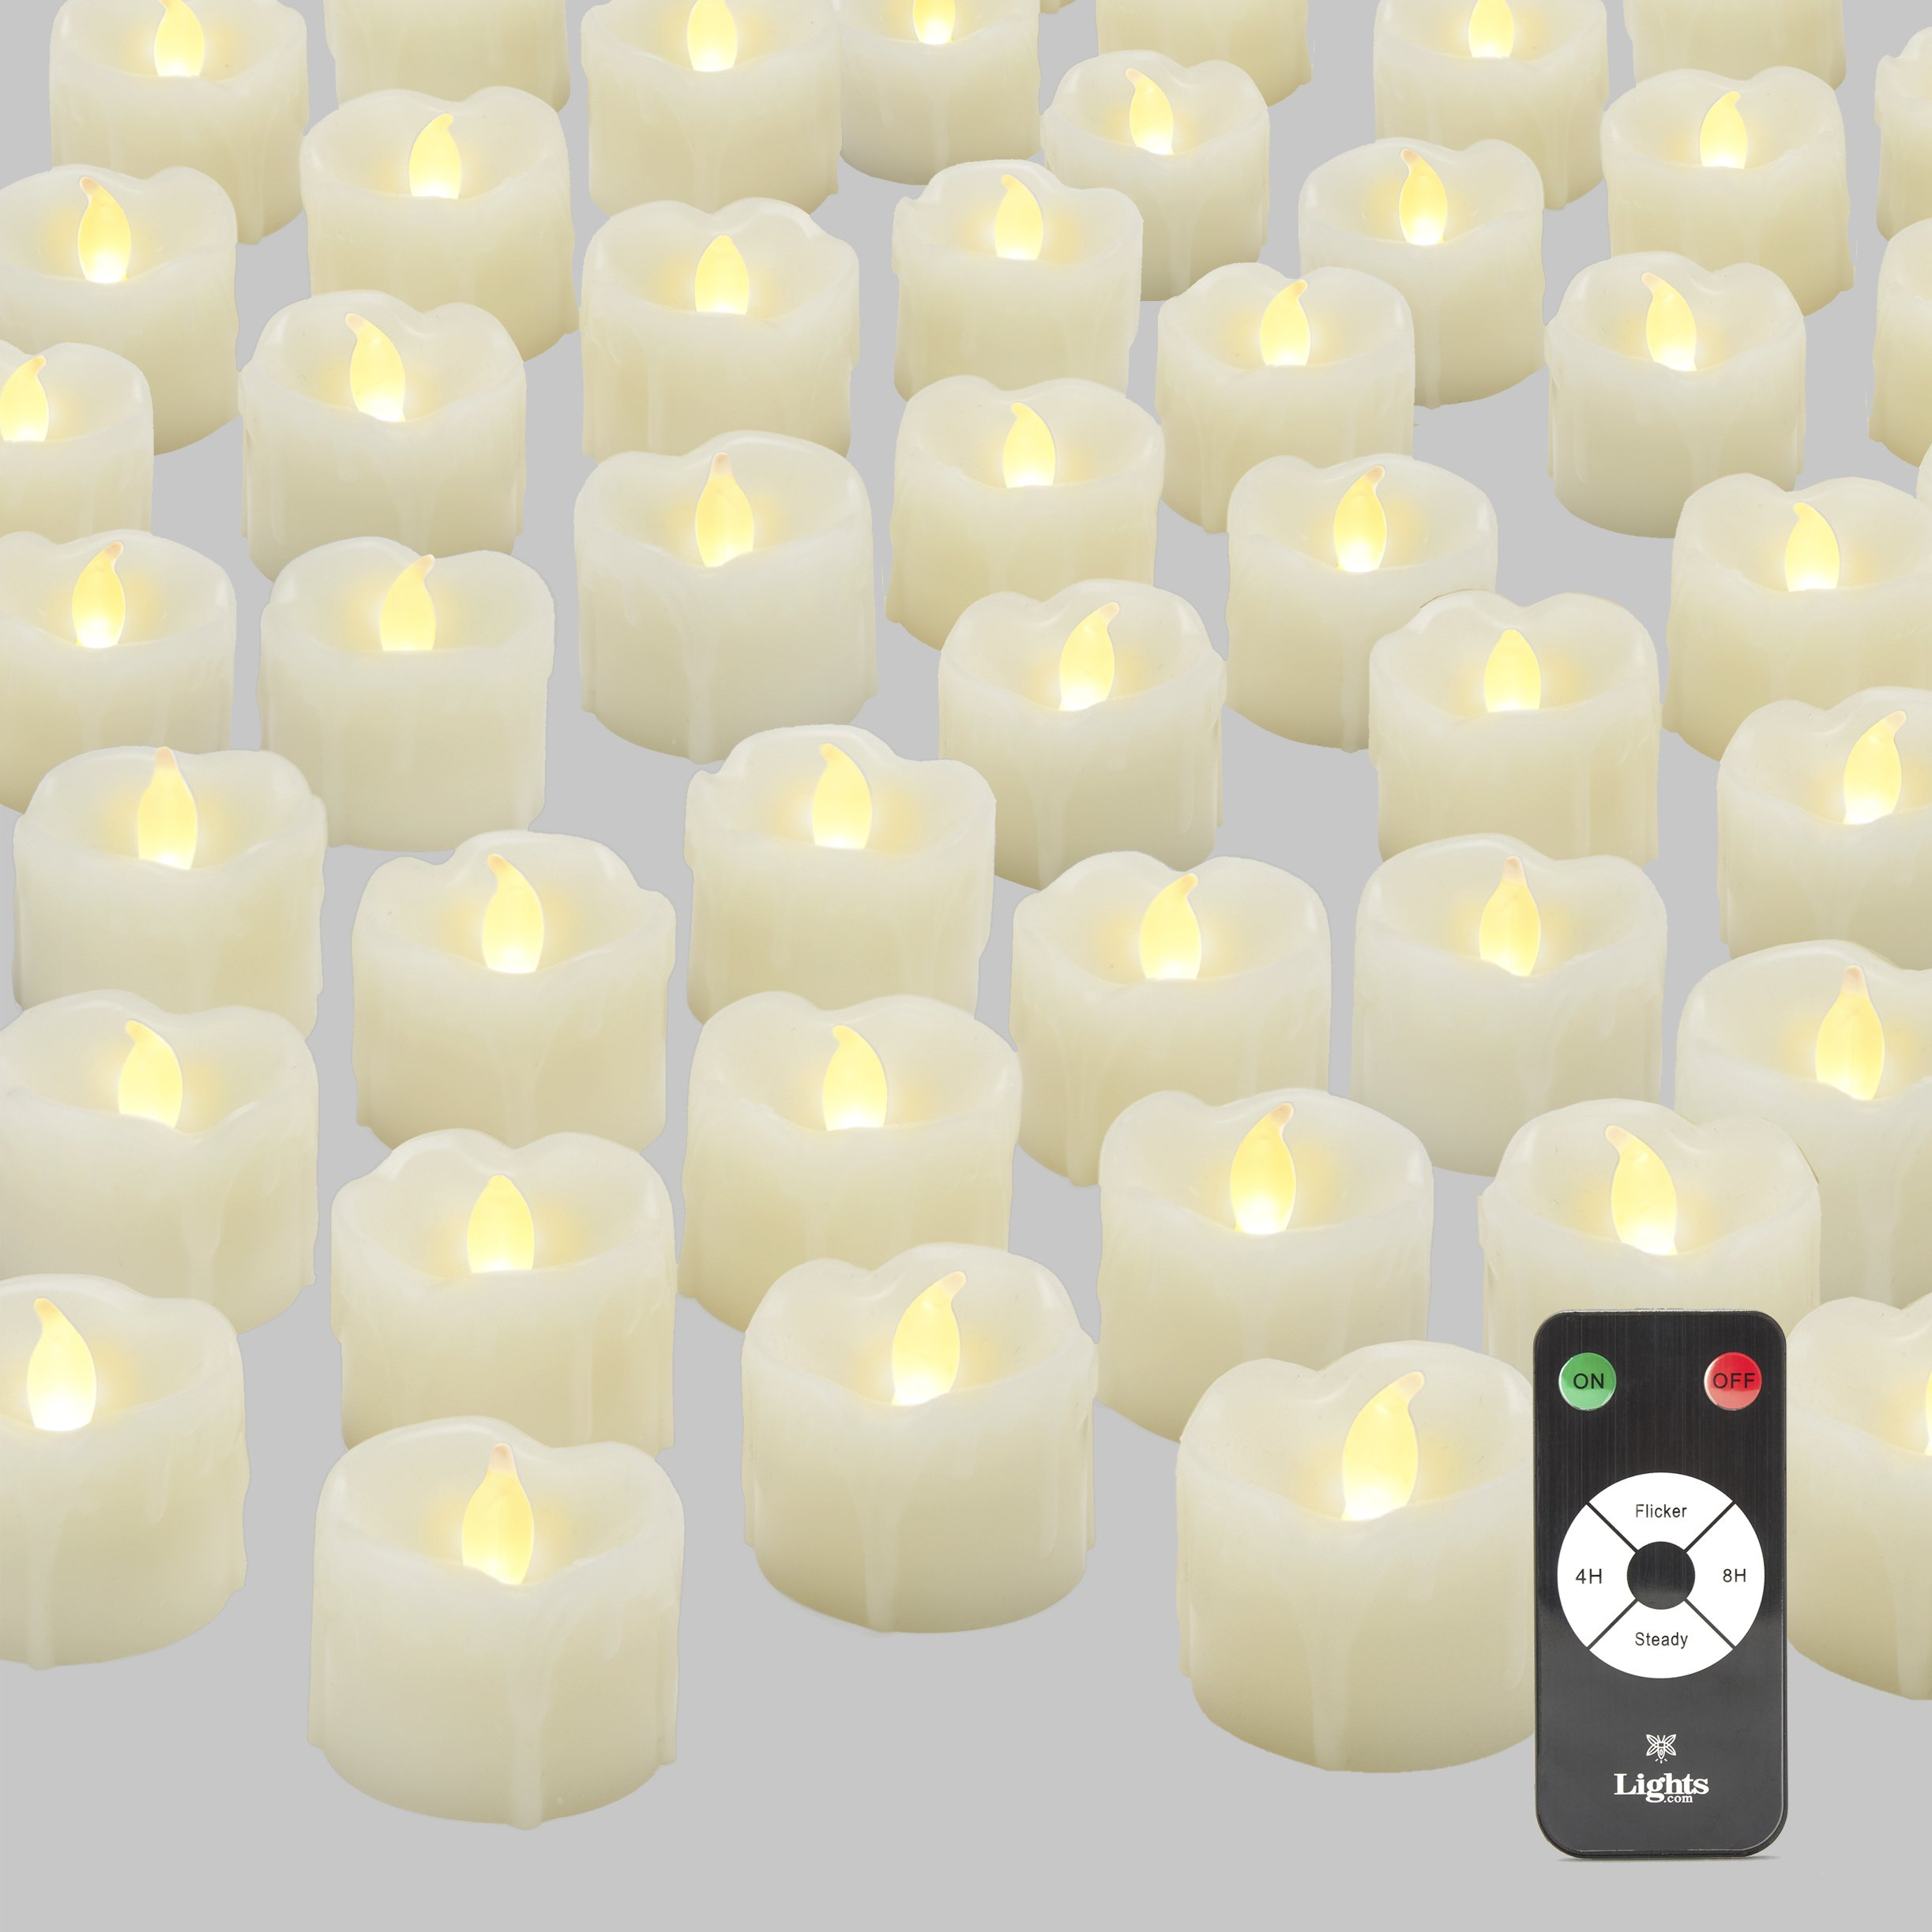 Flameless LED Tea Light Candles with Remote, BULK VALUE SET | 120 Drip Wax Tealights with Warm White Glow, Unscented, Batteries Included by LampLust